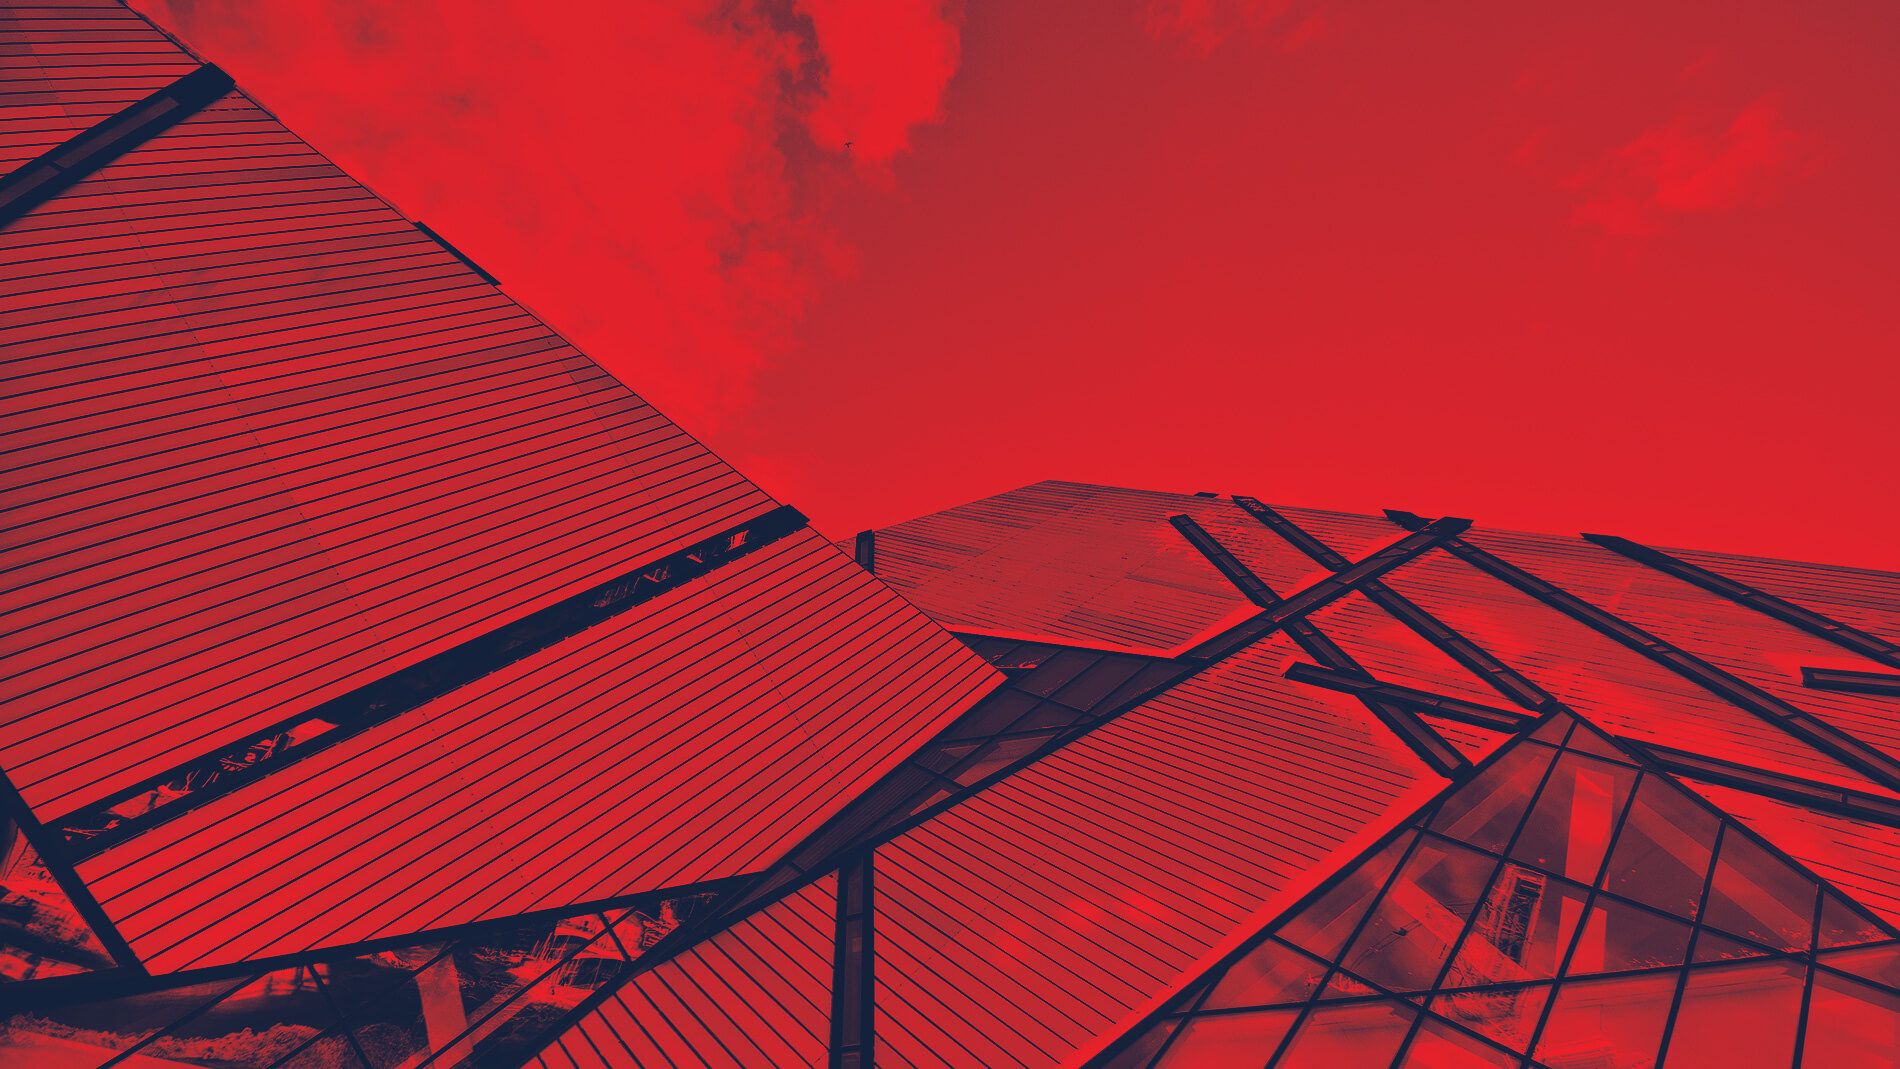 Abstract image of building facade in black and red.